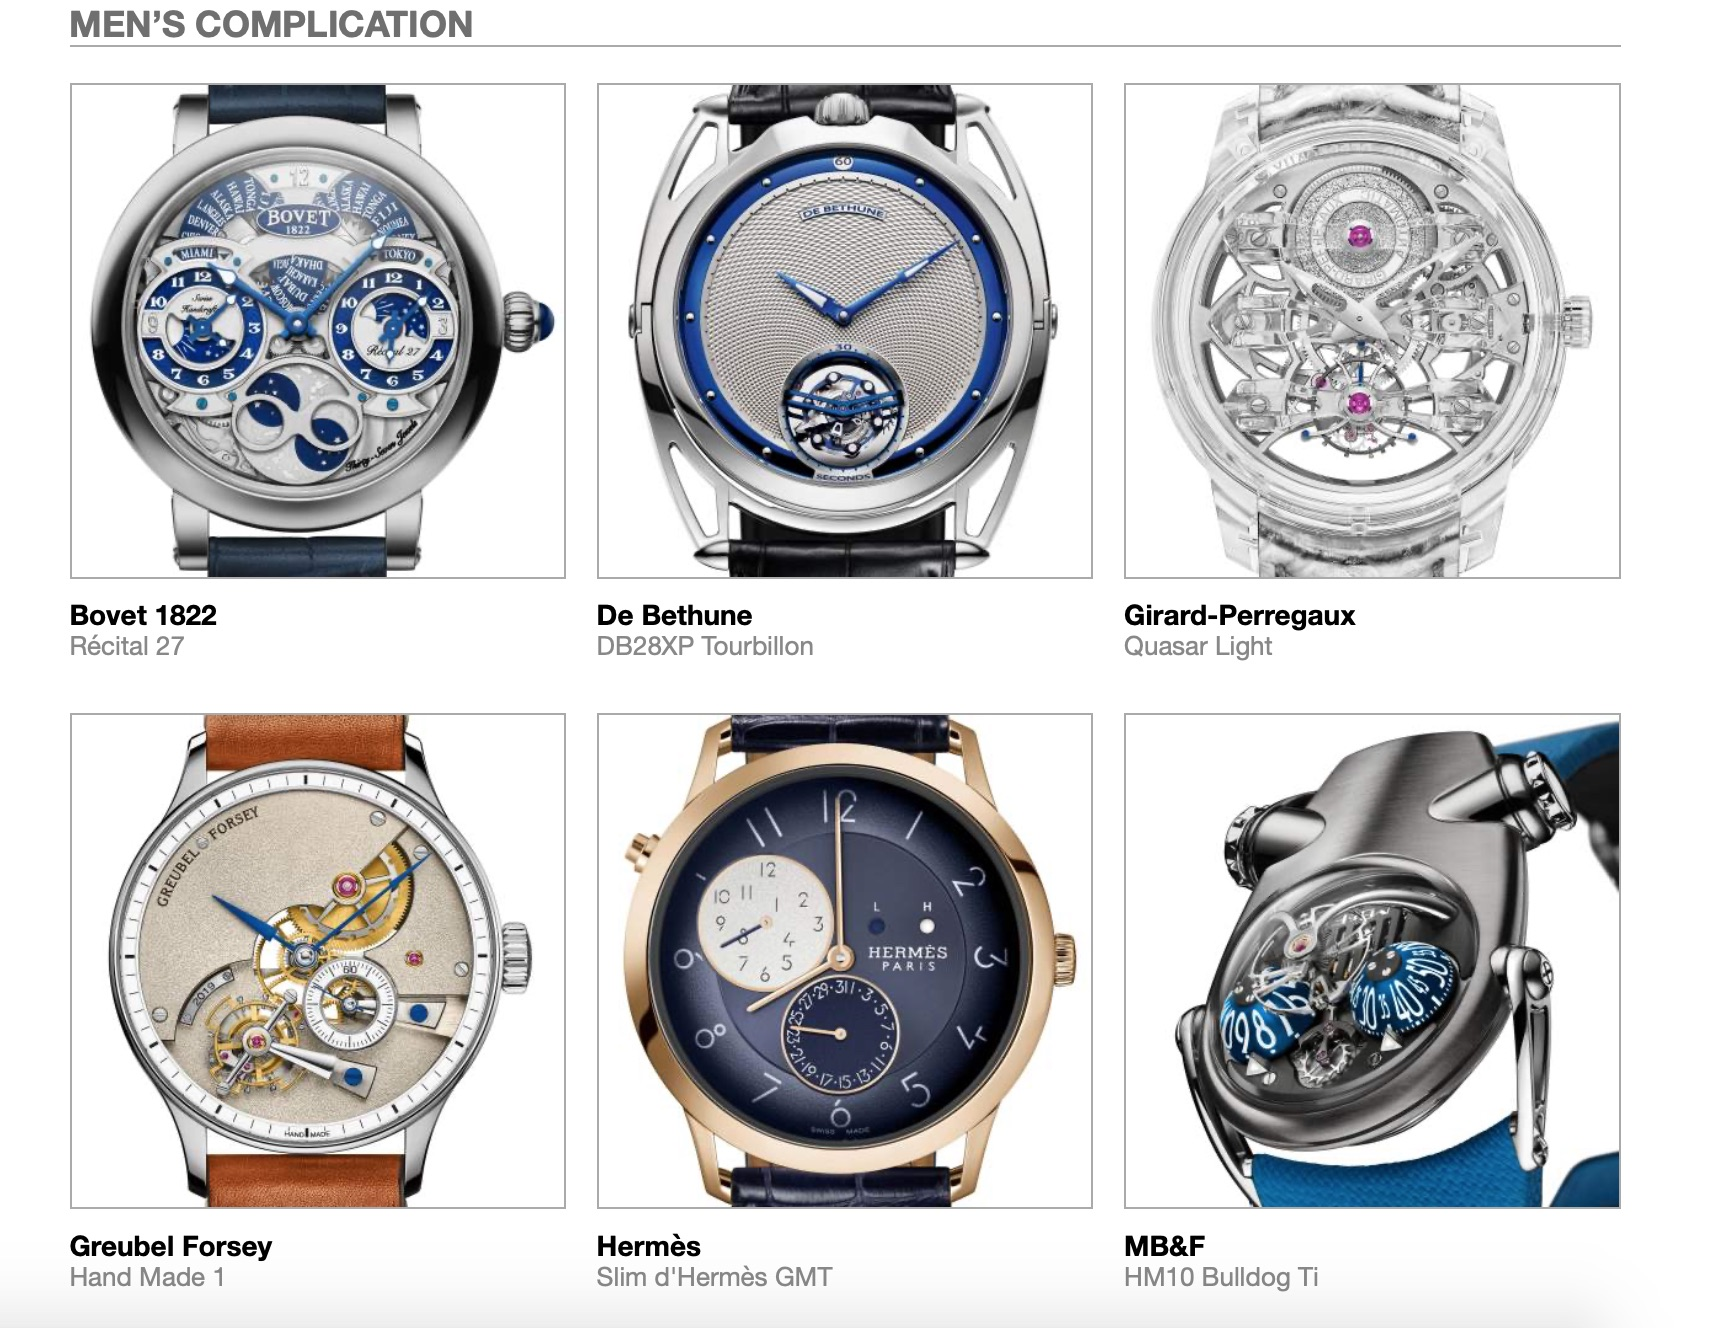 Grand Prix d'Horlogerie de Genève GPHG Academy Nominated Watches 2020 Mens Complications